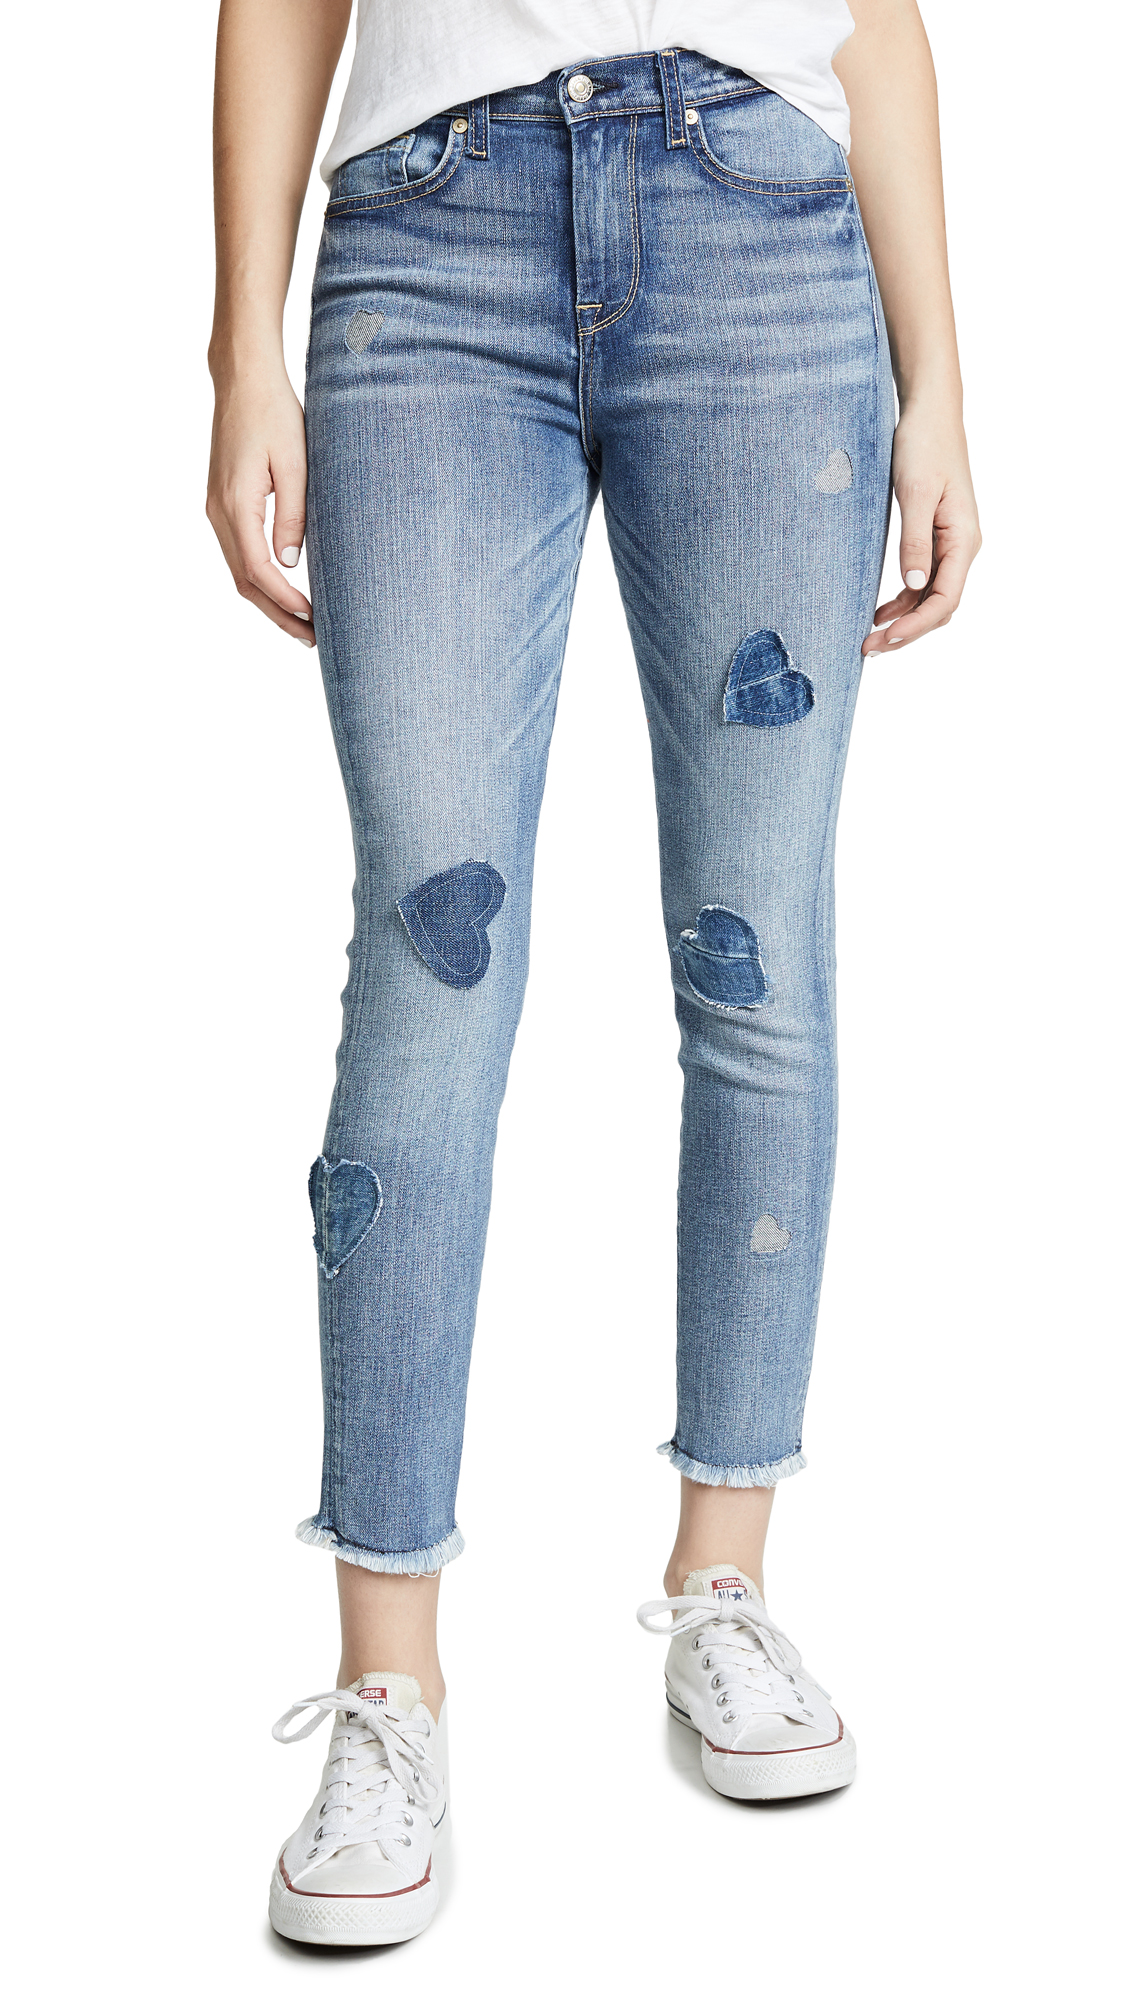 7 For All Mankind Ankle Skinny Jeans with Patches - Indigo With Heart Patch